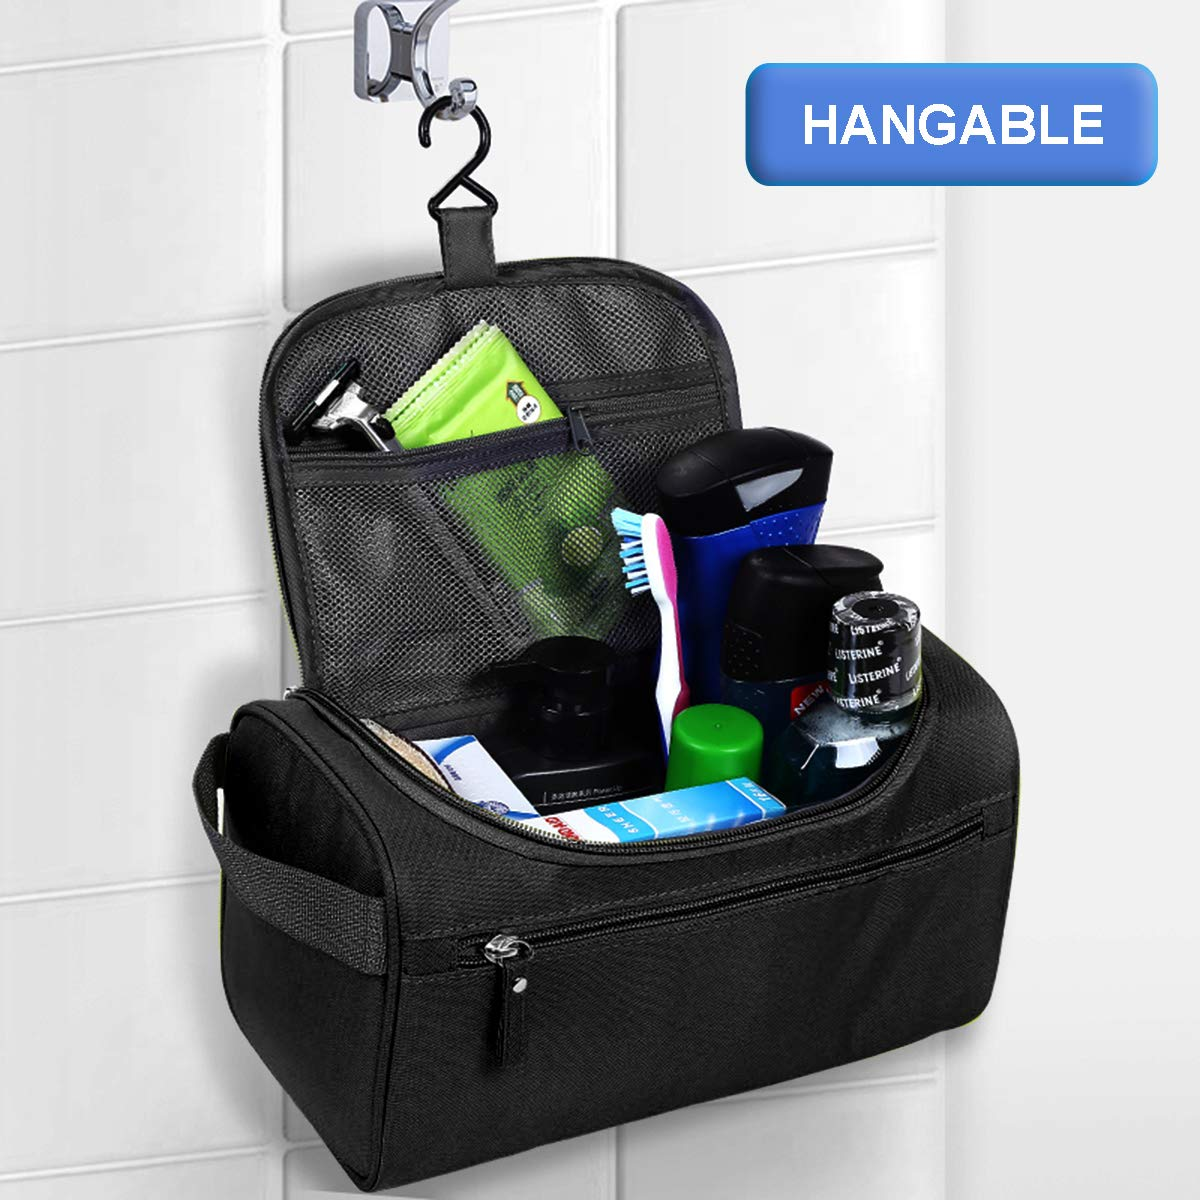 Wash Bag Mens,AOBETAK Large Hanging Waterproof Toiletry Bag with Mesh and  Zip Compartment,Overnight Gym Shaving Travel ... eaf1d4cc8d